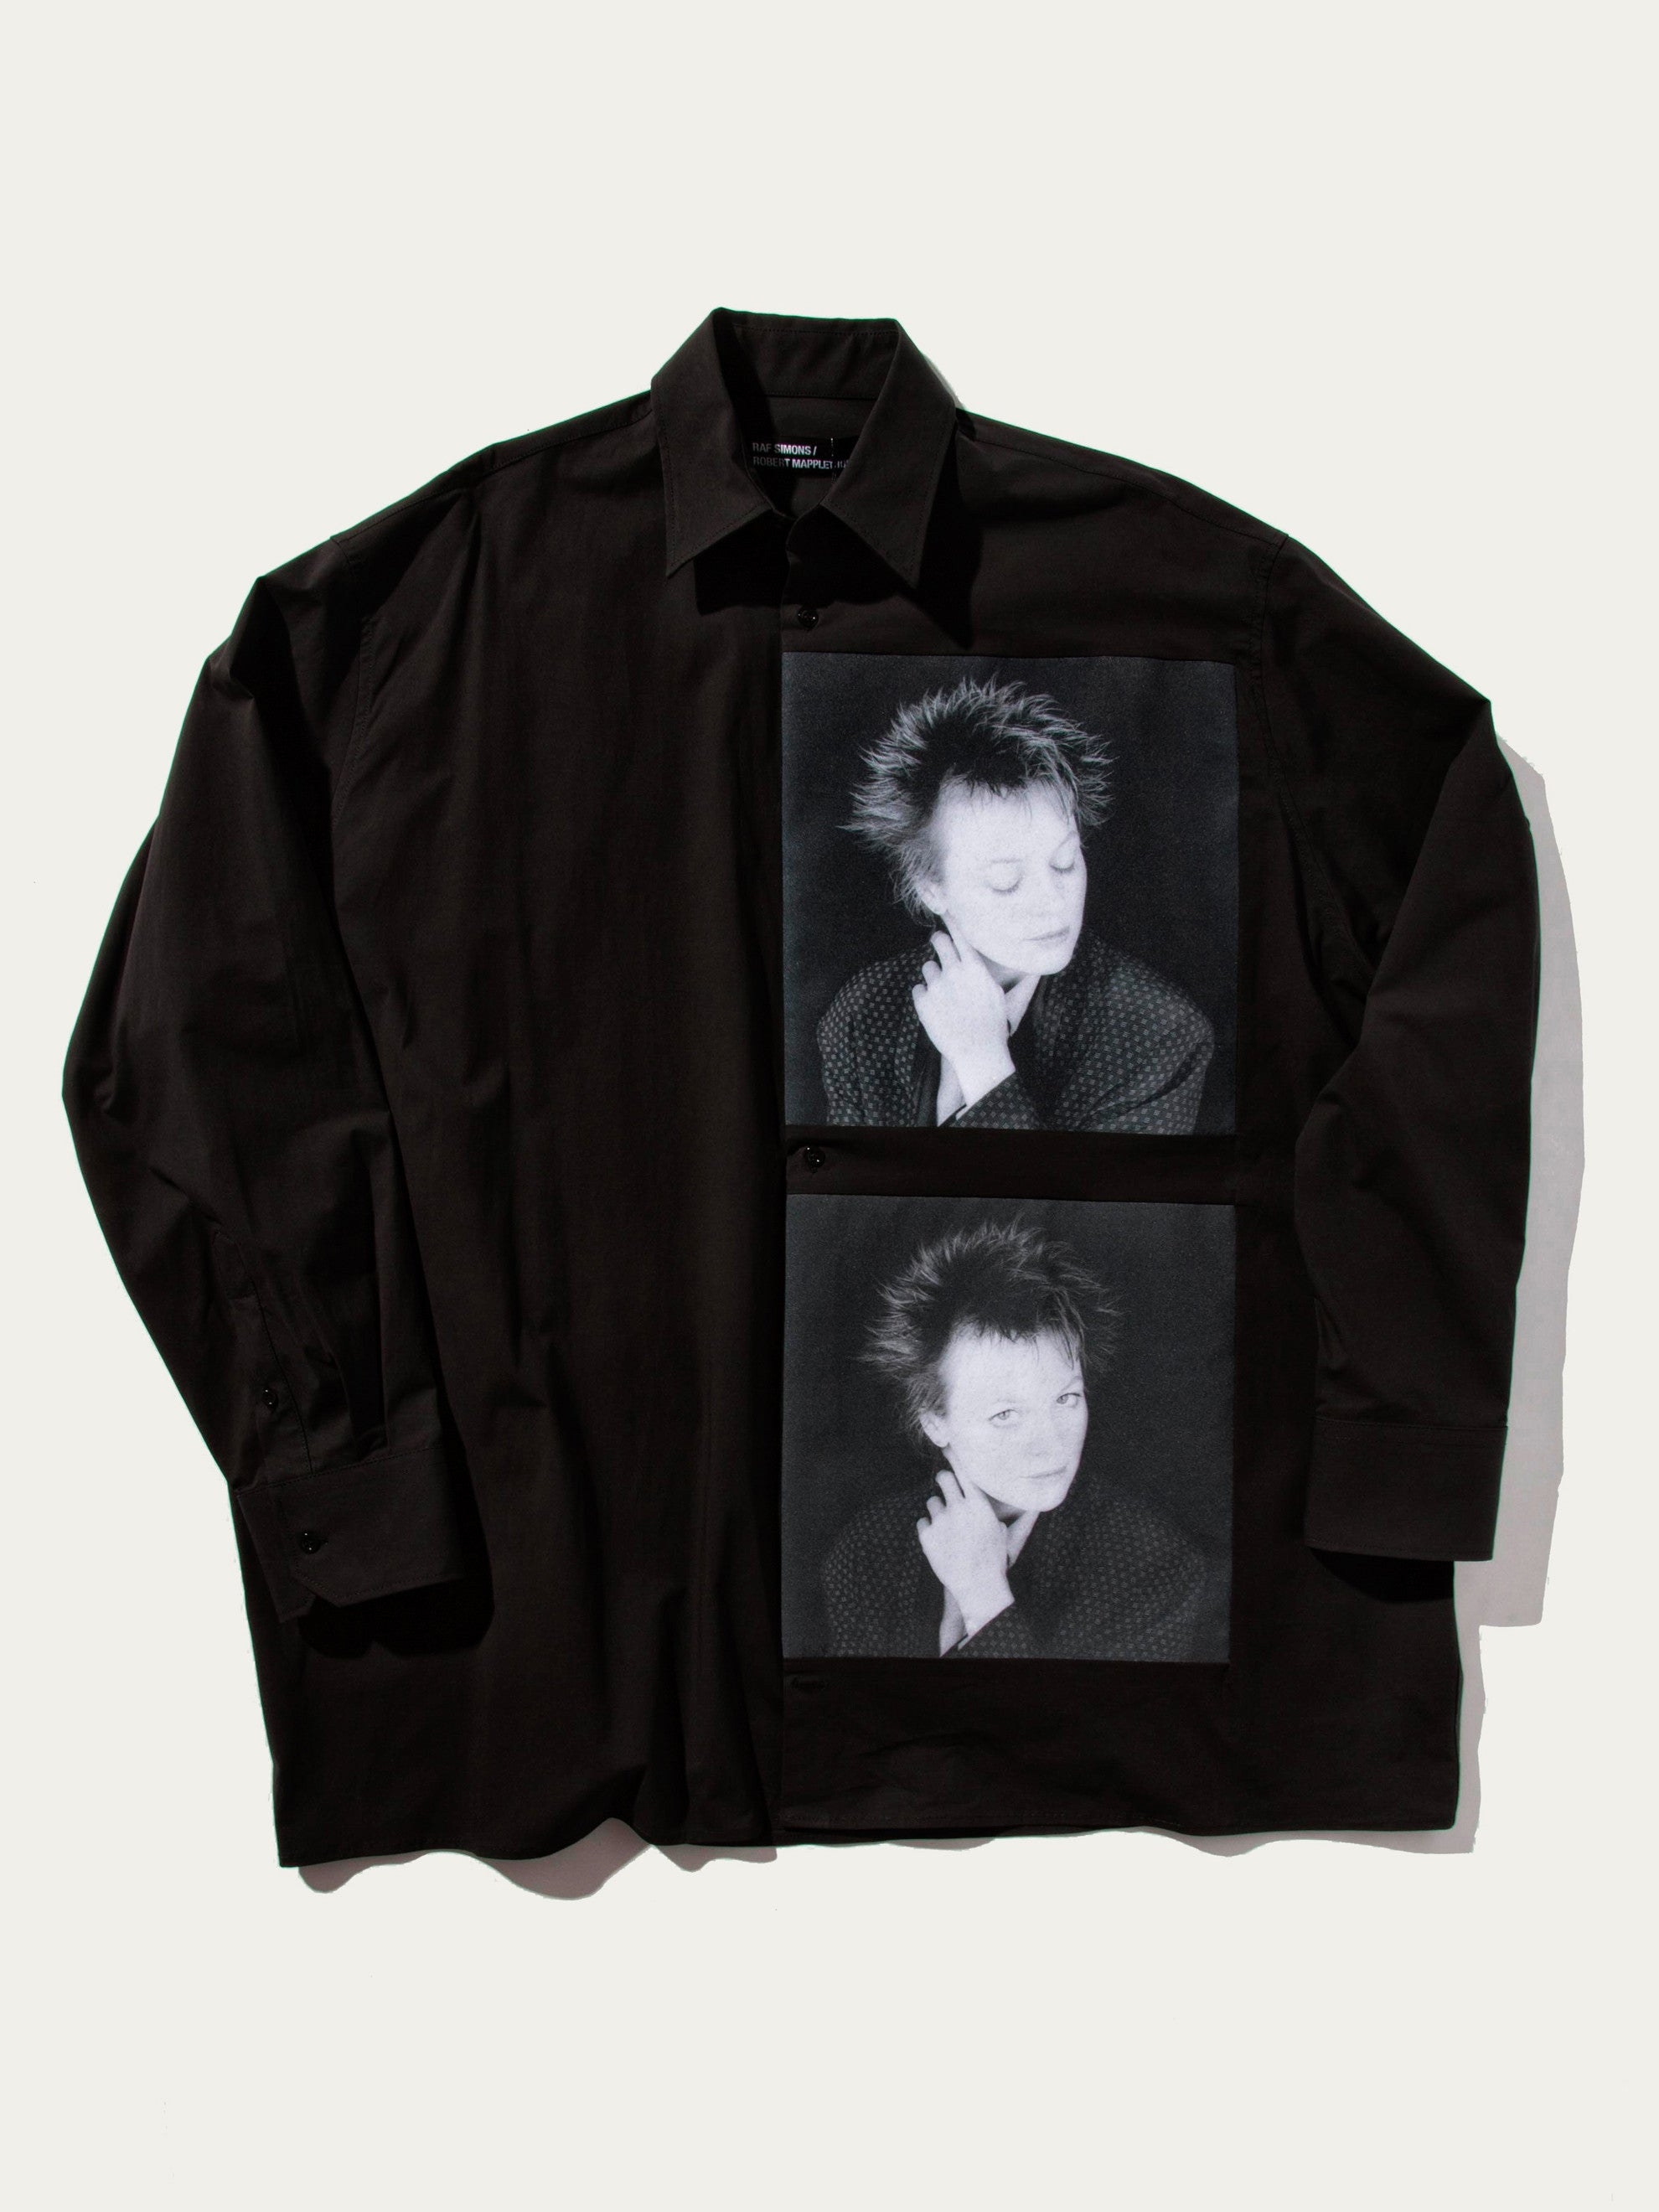 Oversized Shirt (Laurie Anderson, 1987)